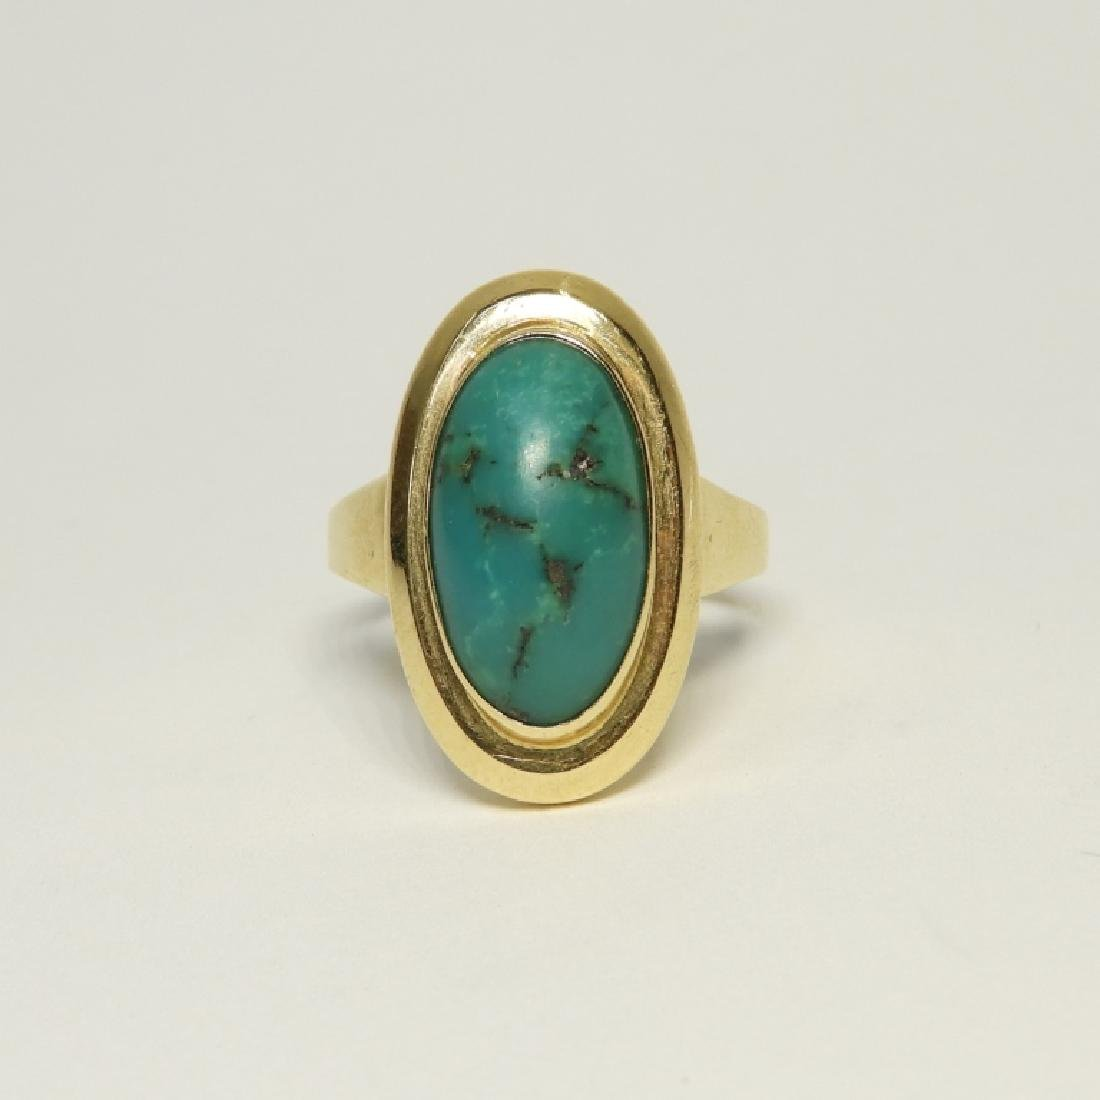 14K Yellow Gold & Turquoise Cabochon Stone Ring